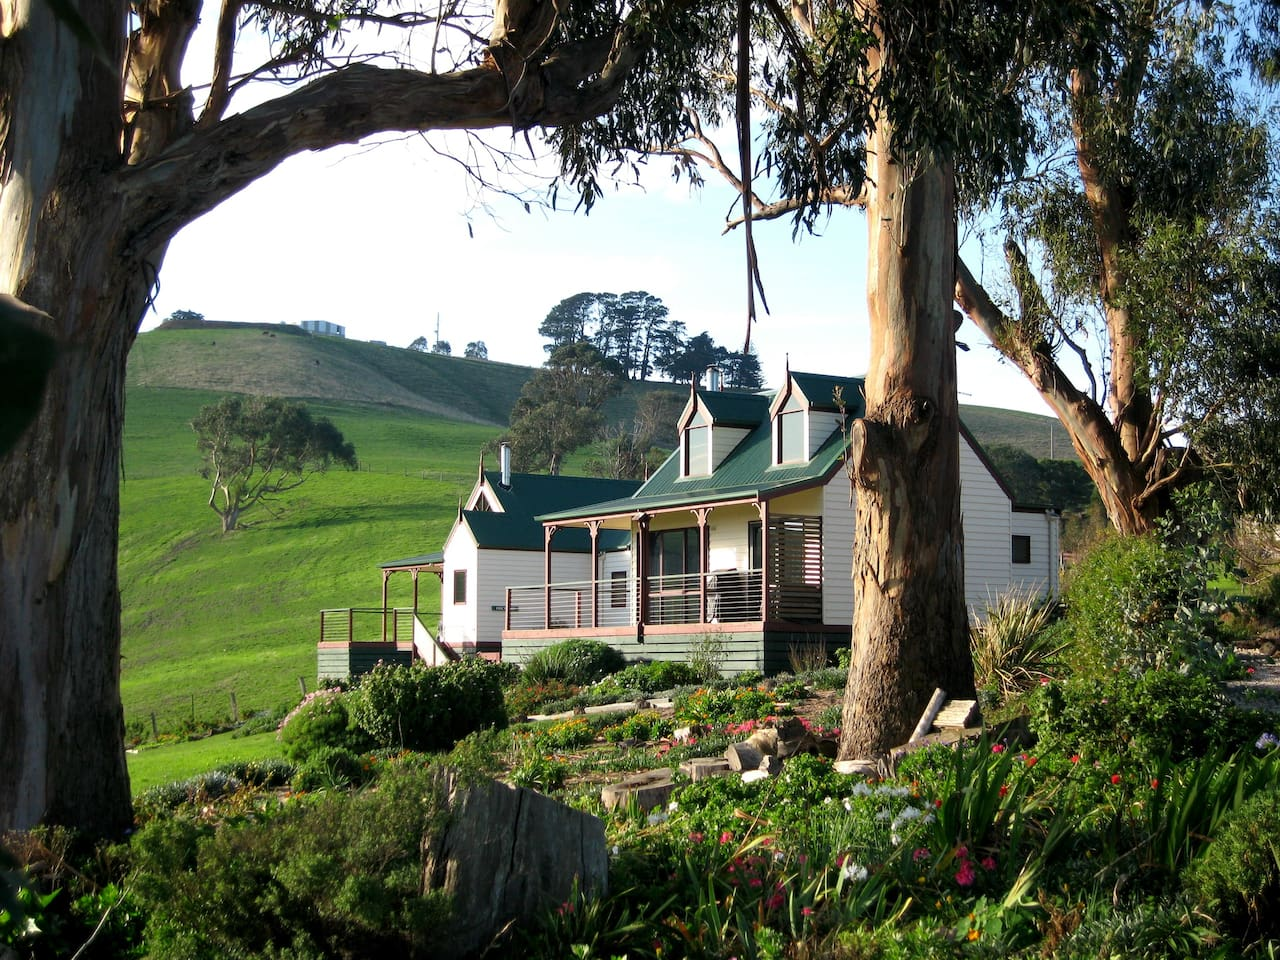 Our cottages set amongst rolling green pastures in a fairytale setting